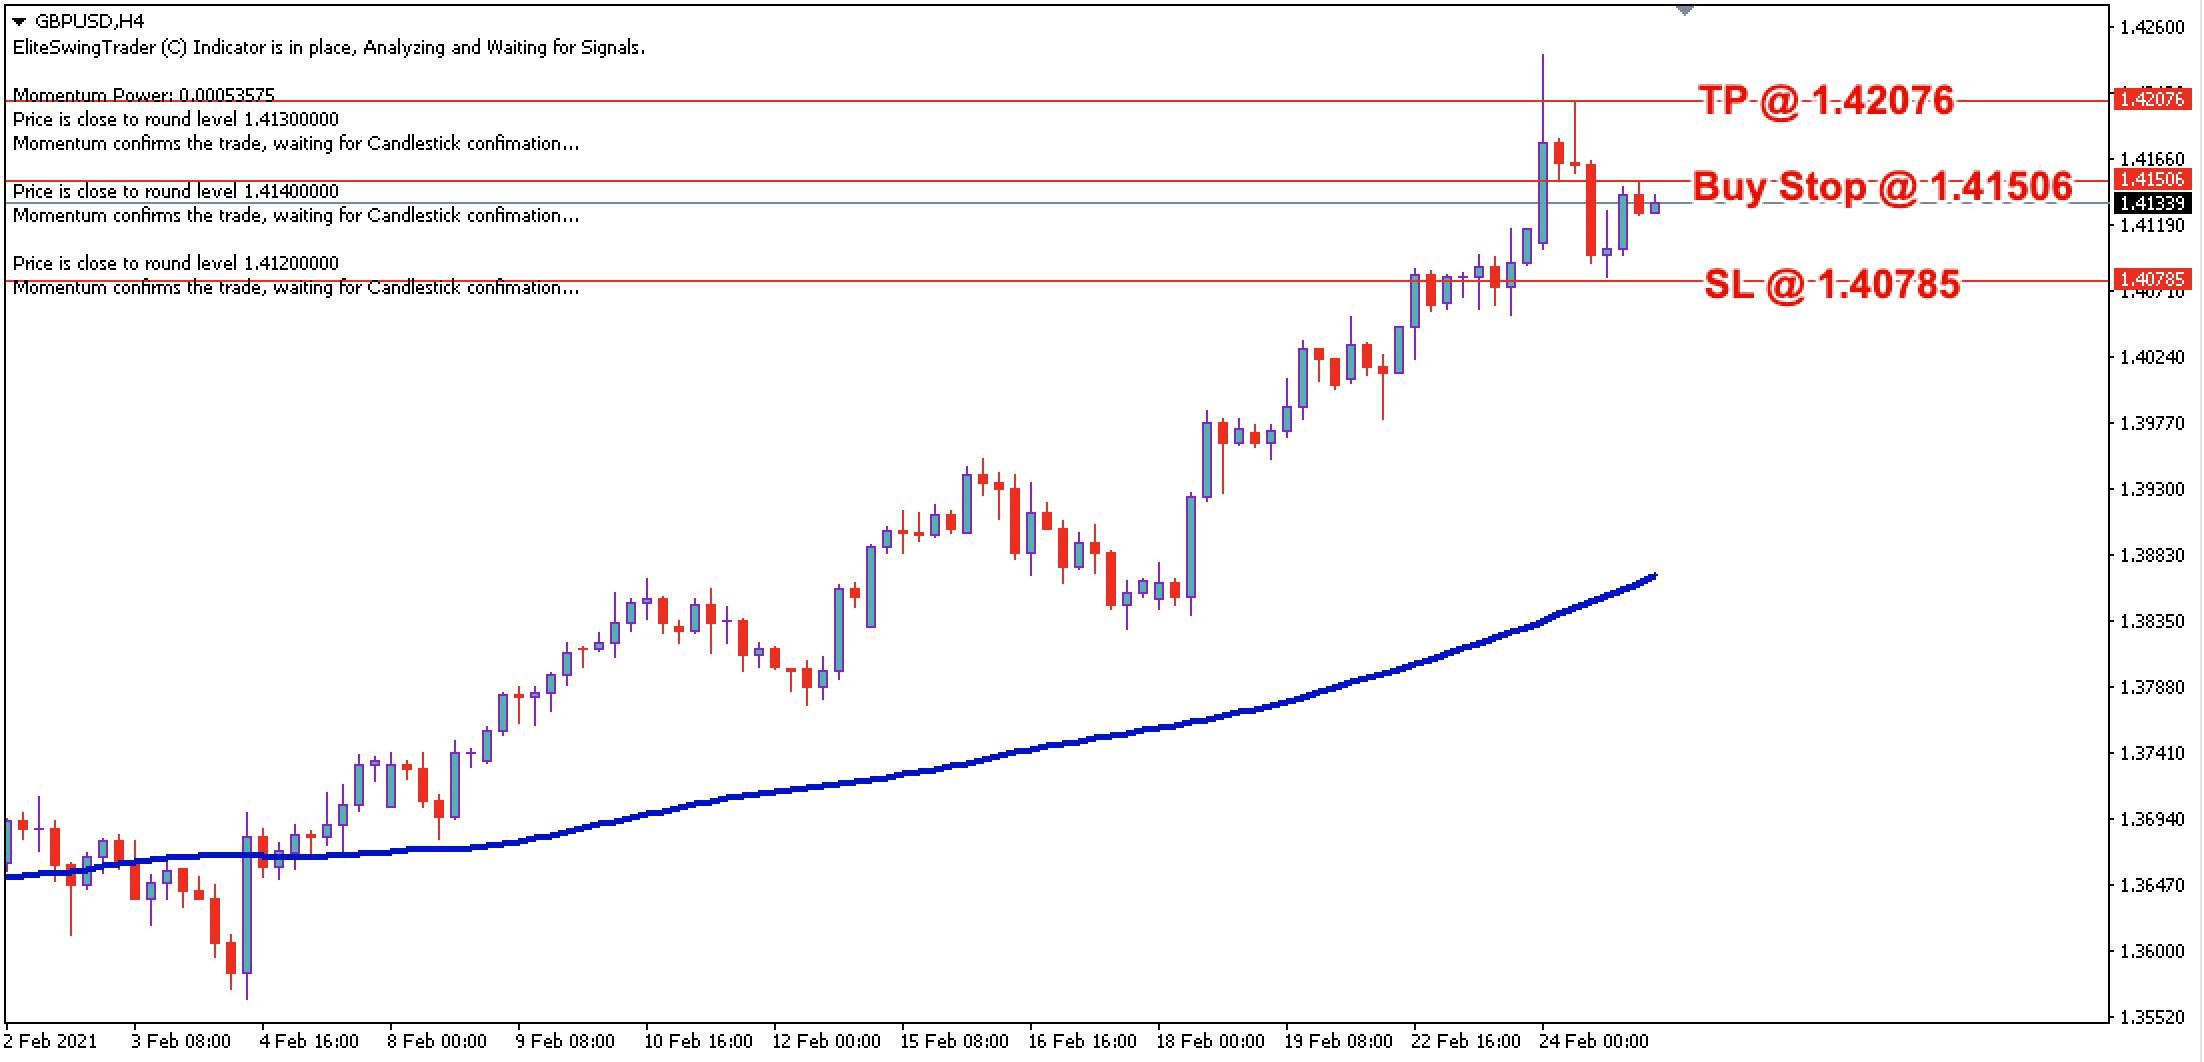 GBP/USD Daily Price Forecast - 25th Feb 2021